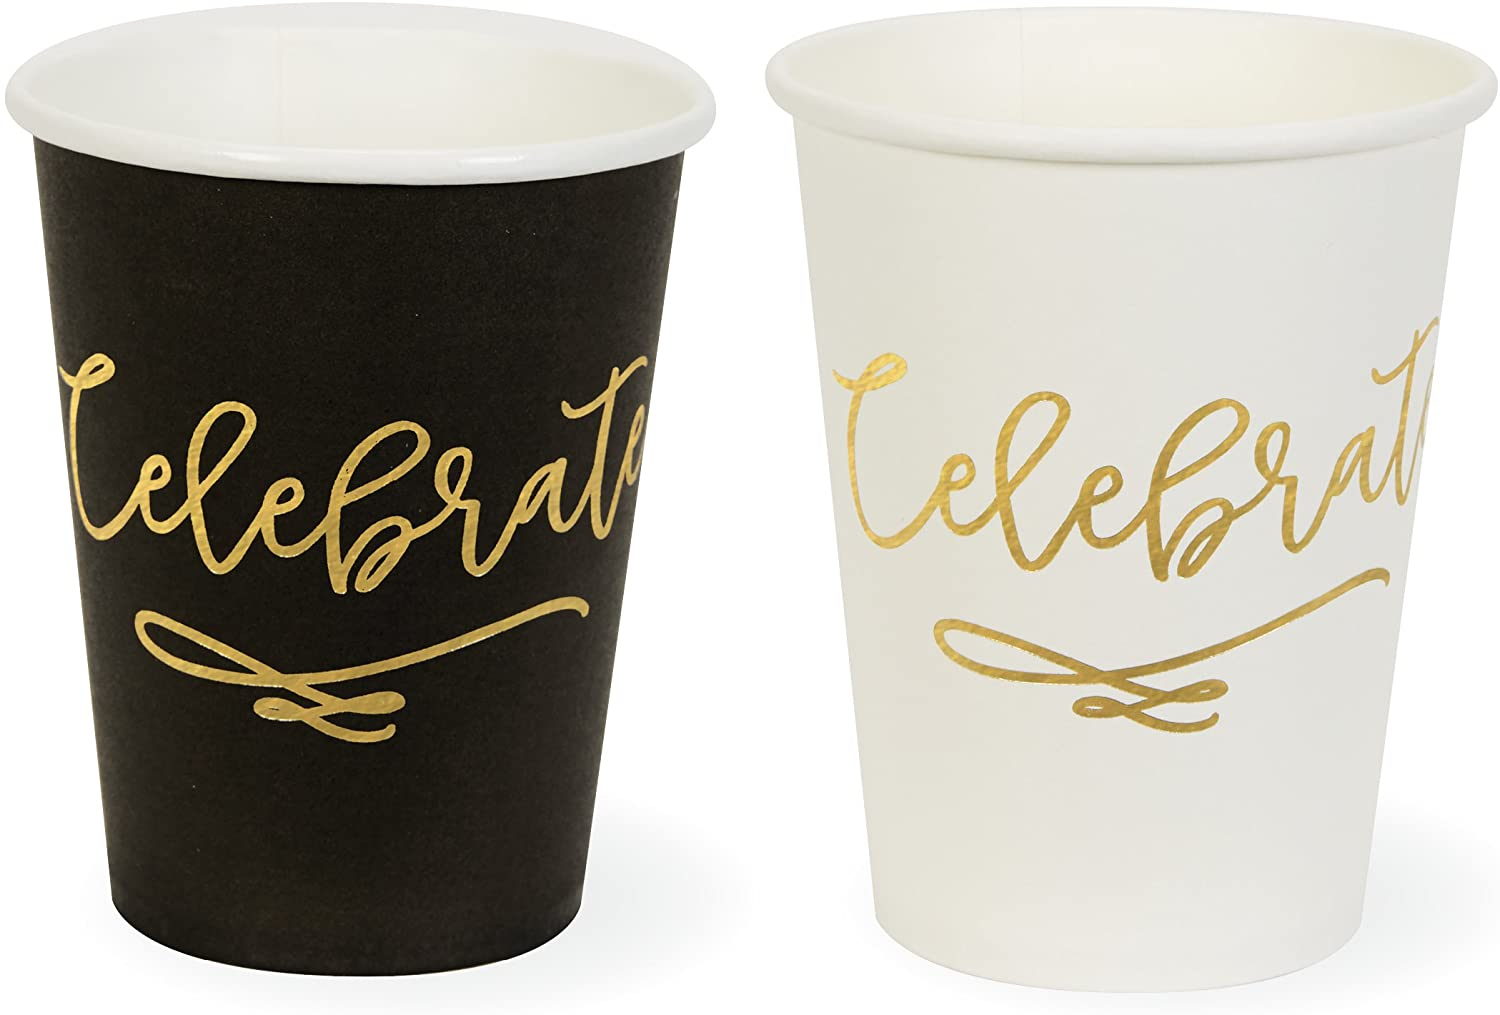 C.R. Gibson 'Celebrate' Black White and Gold Paper Cups, 9 oz, 12 ct.